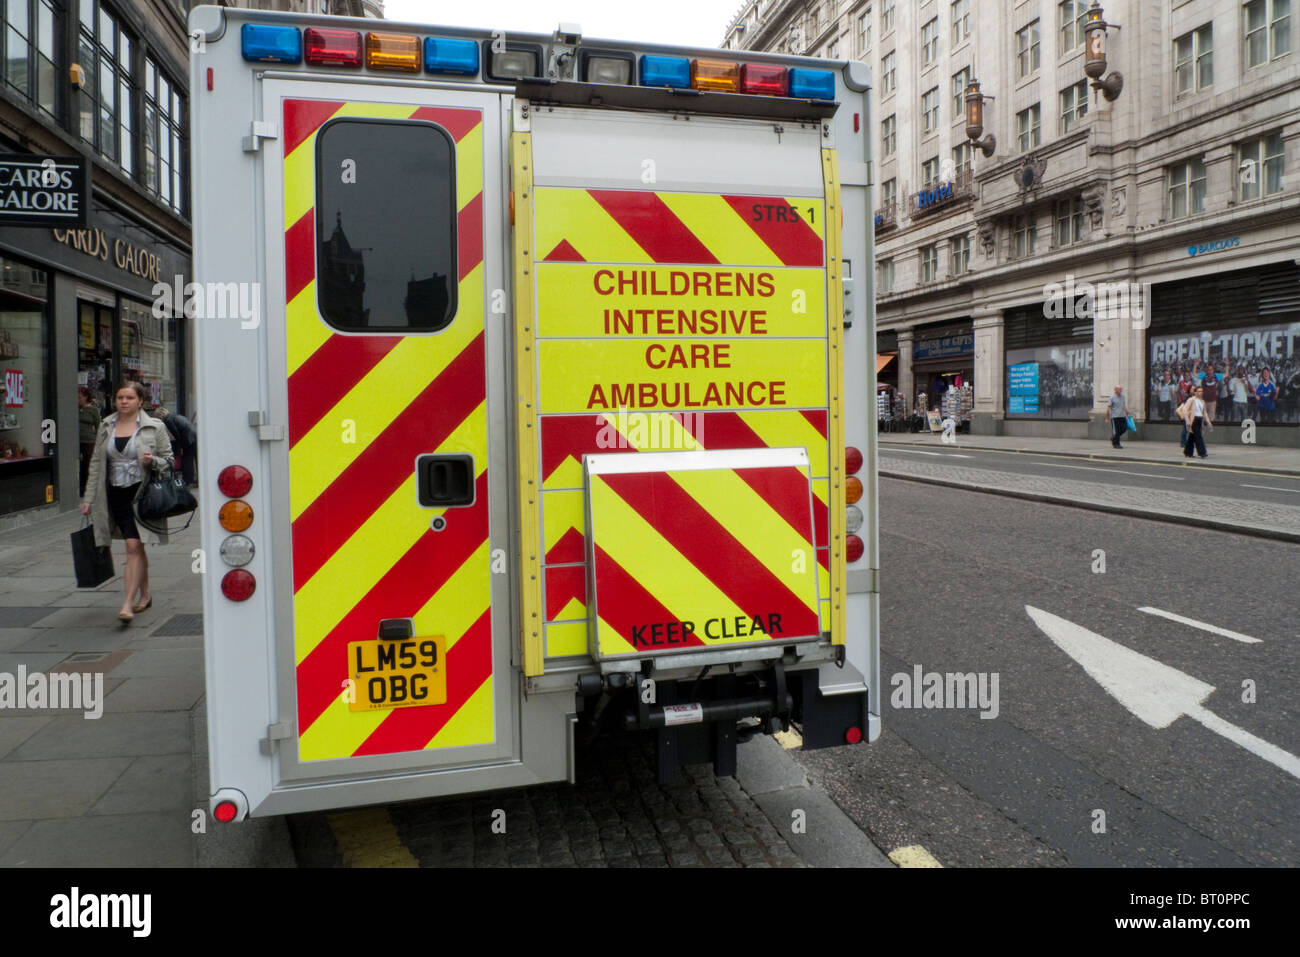 A back view of a Childrens Intensive Care Ambulance, The Strand, London England UK - Stock Image